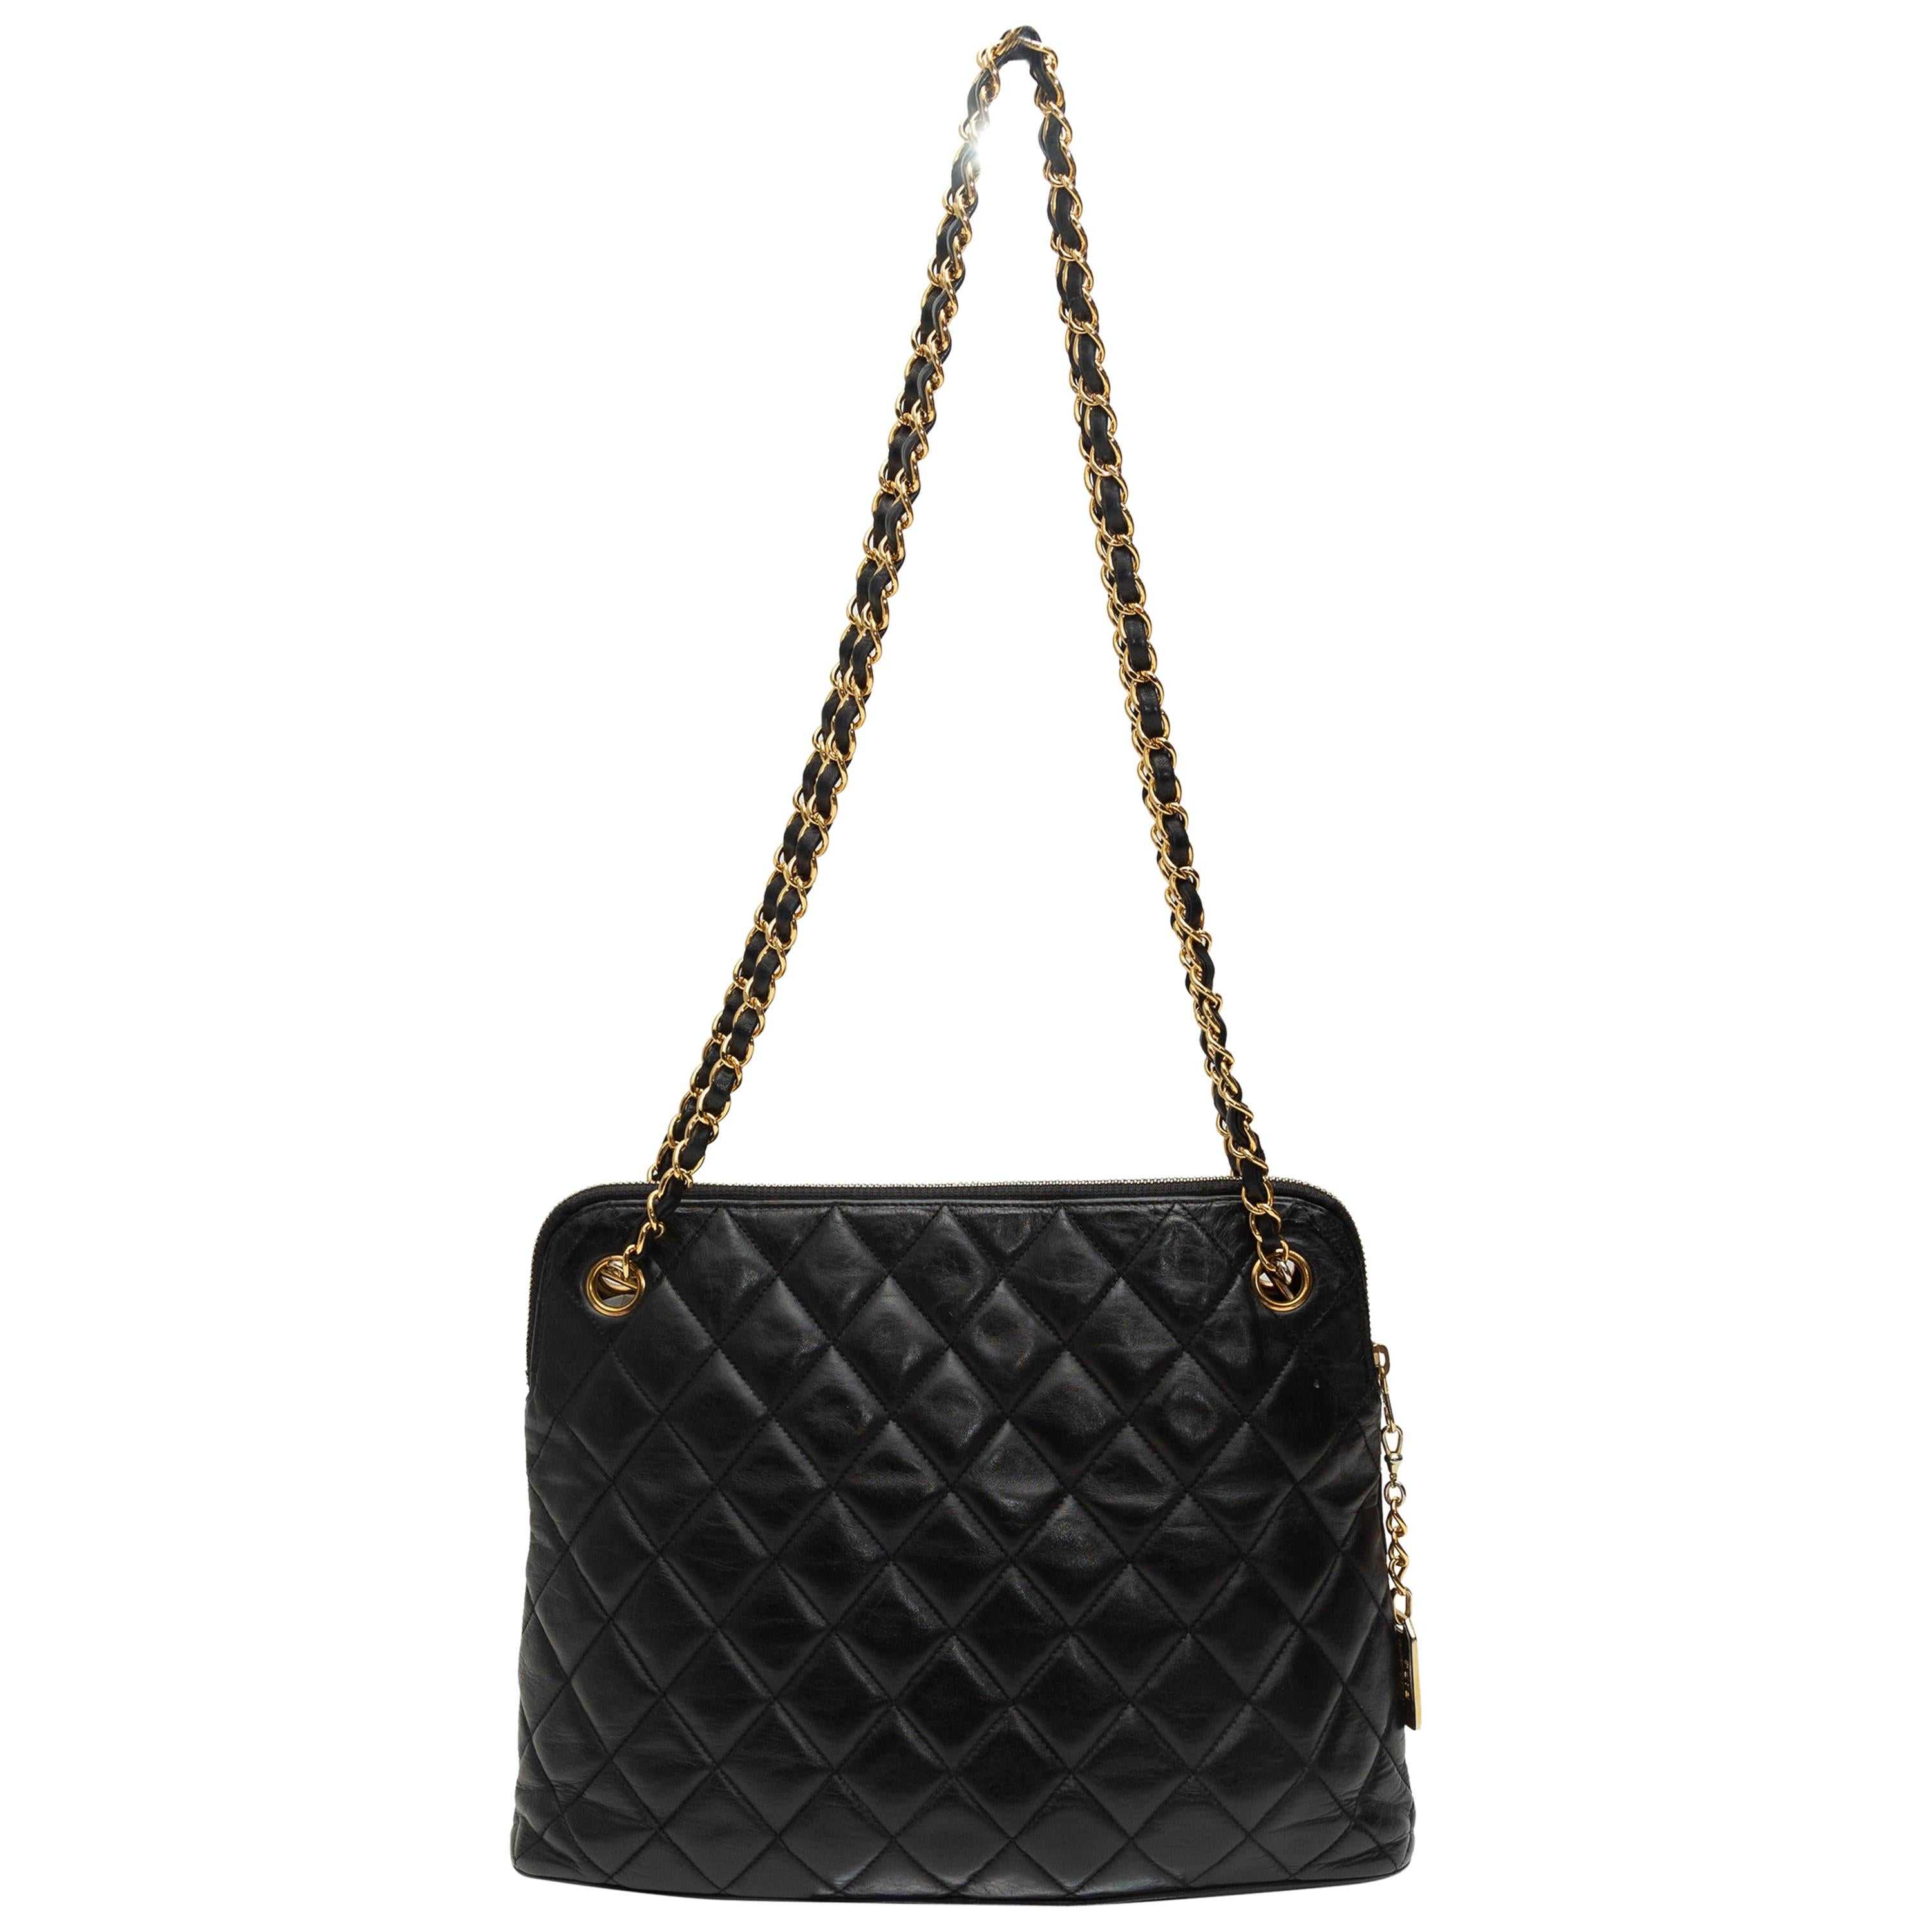 Chanel Black 1980s Quilted Leather Bag